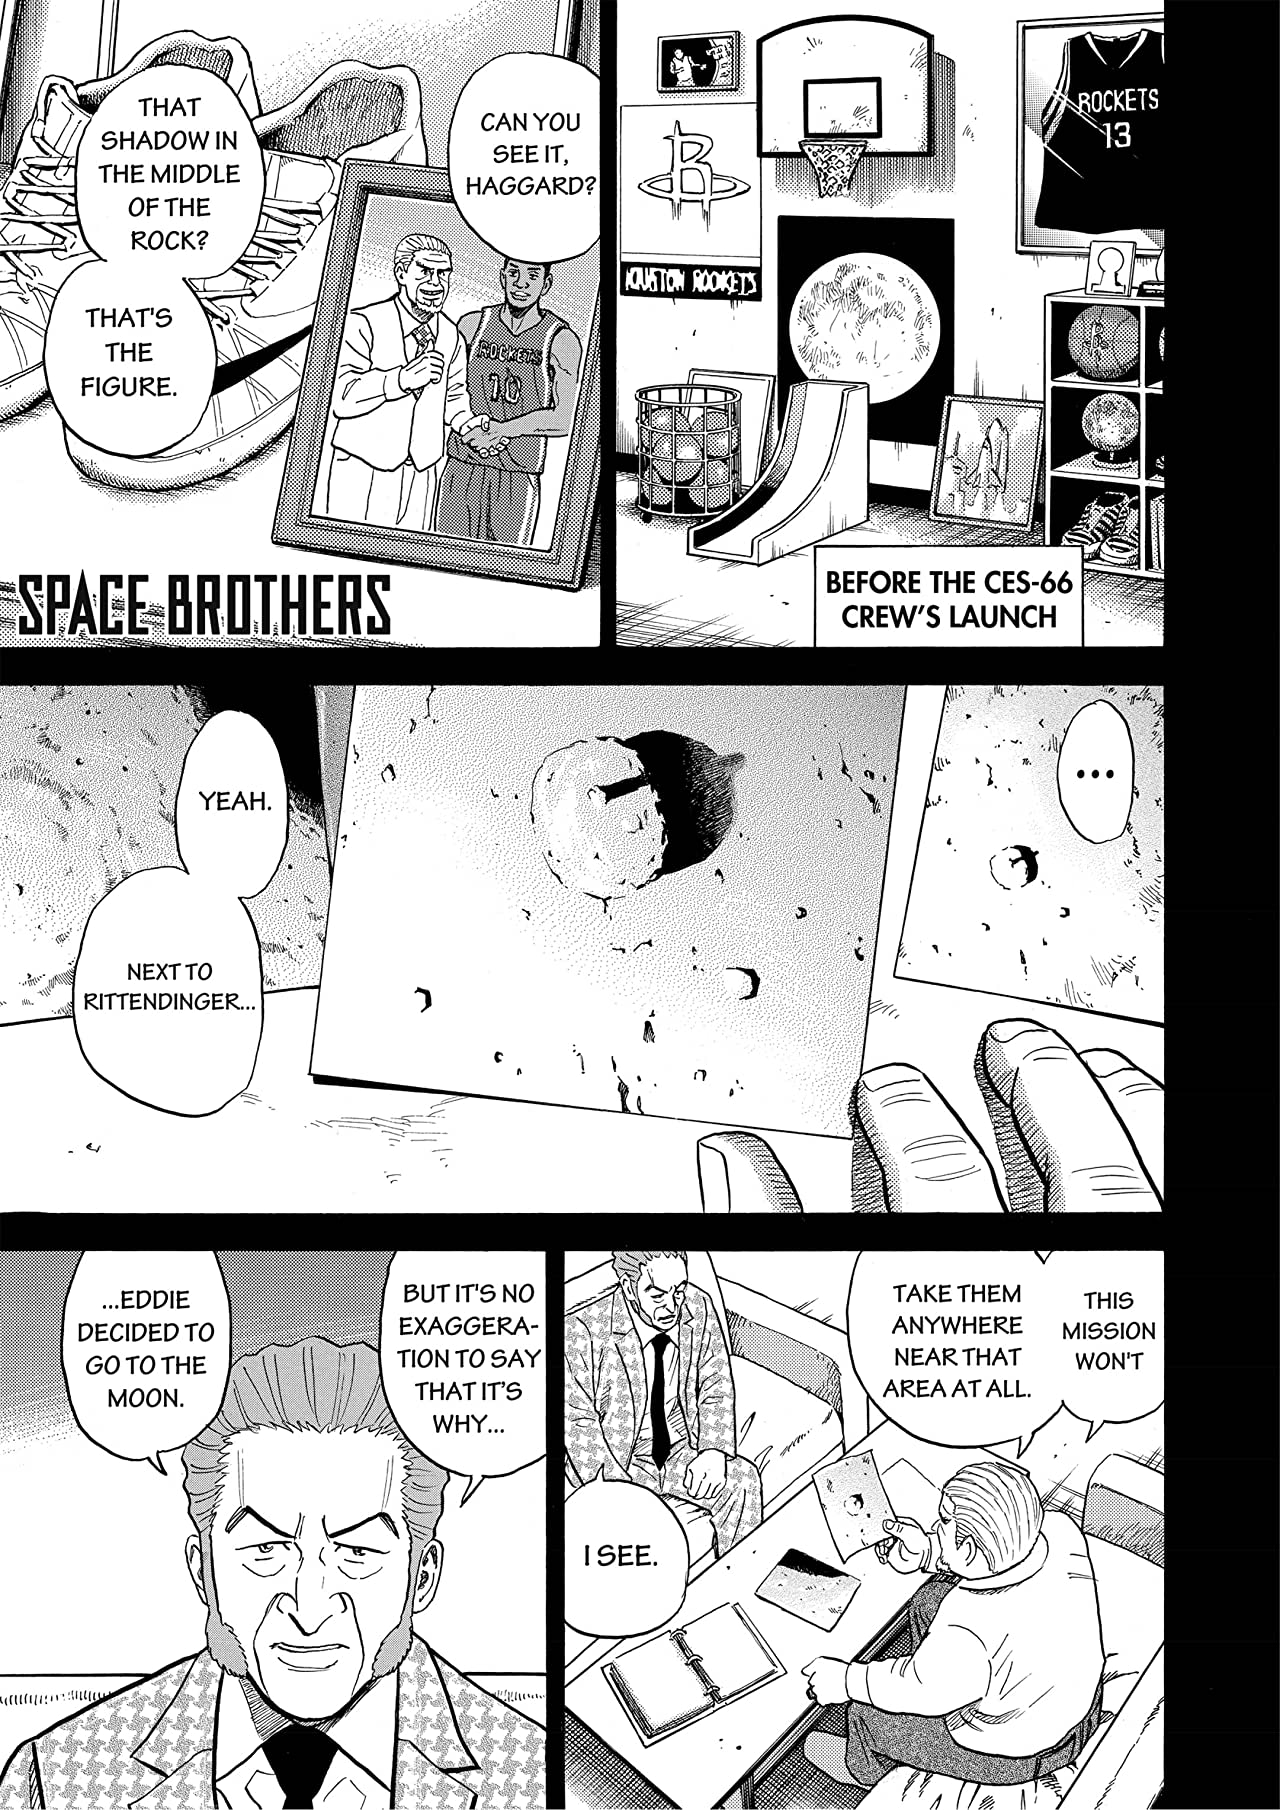 Space Brothers #281